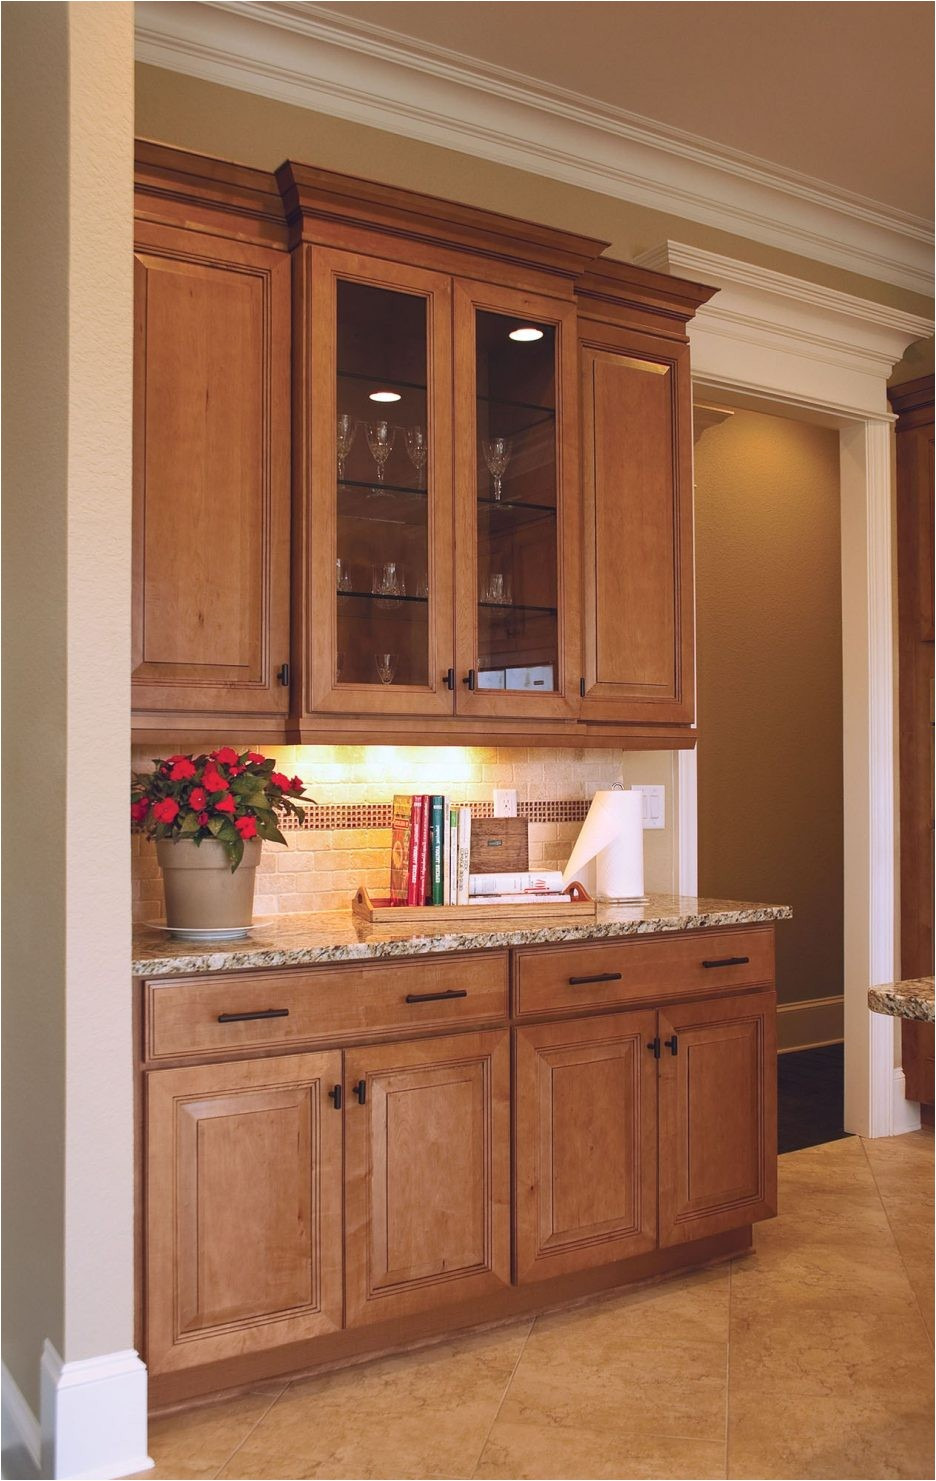 Replacement Cabinet Doors and Drawer Fronts Elegant Cabinet Refacing Doors and Drawer Fronts